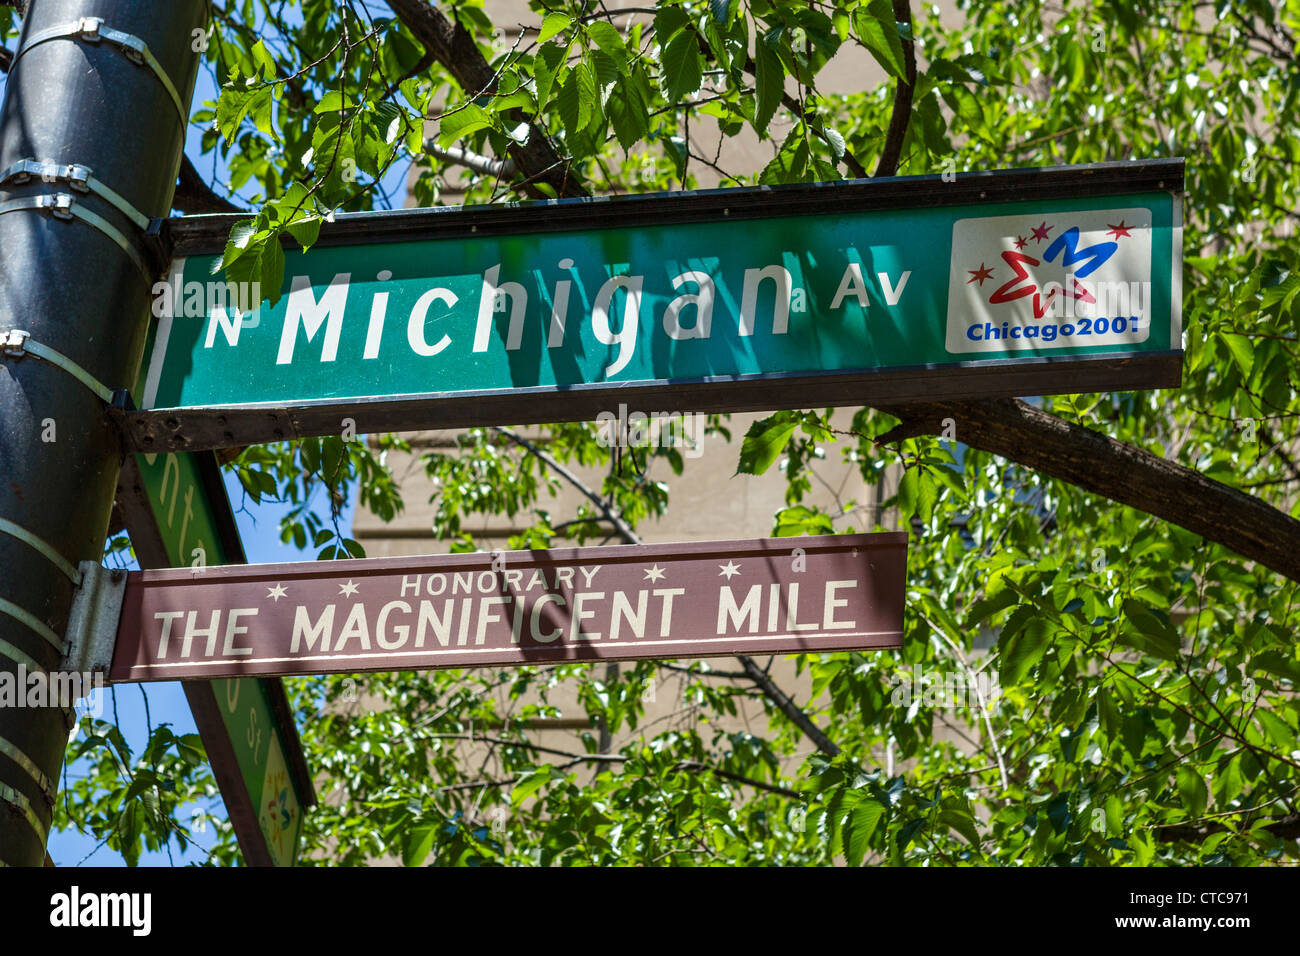 Magnificent Mile street sign, Michigan Avenue, Chicago, Illinois, États-Unis Photo Stock